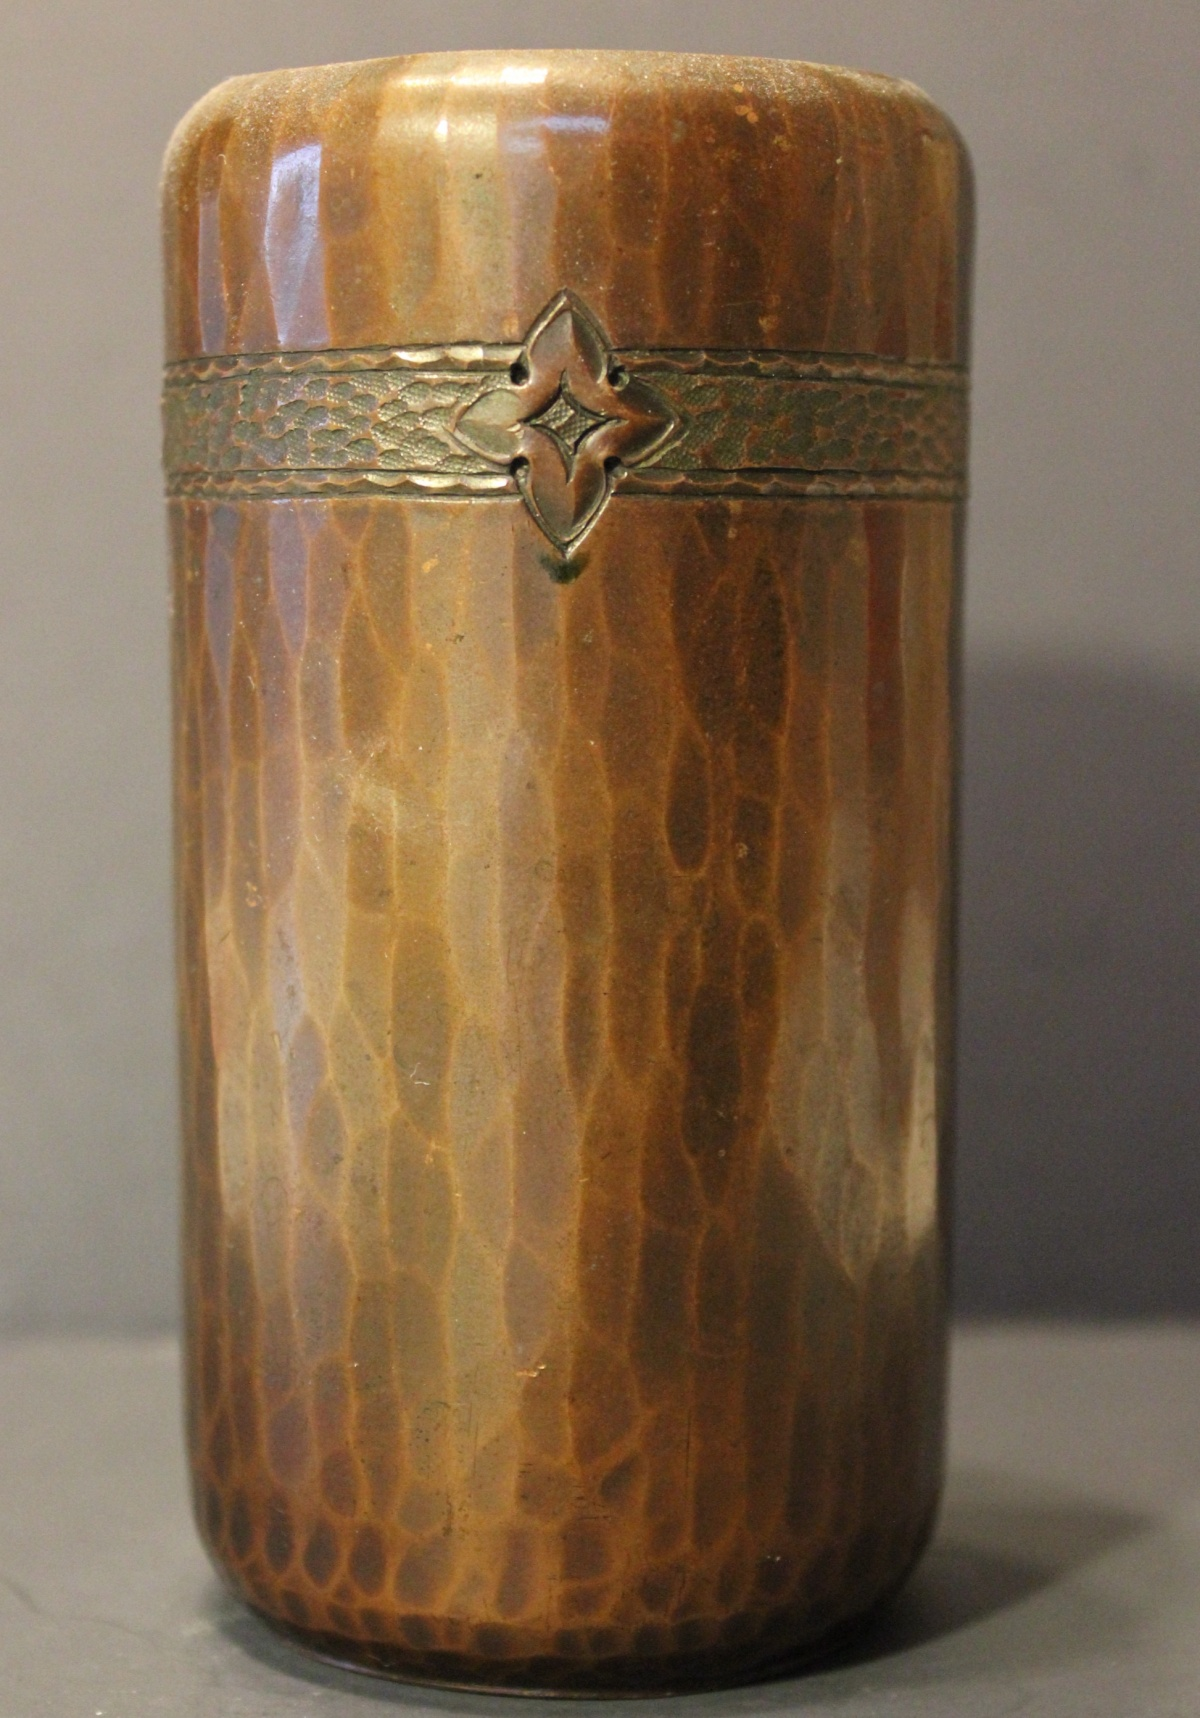 Roycroft hammered copper cylinder form vase roycroft hammered copper cylinder form vase with tooled flower band thumbnail thumbnail thumbnail reviewsmspy